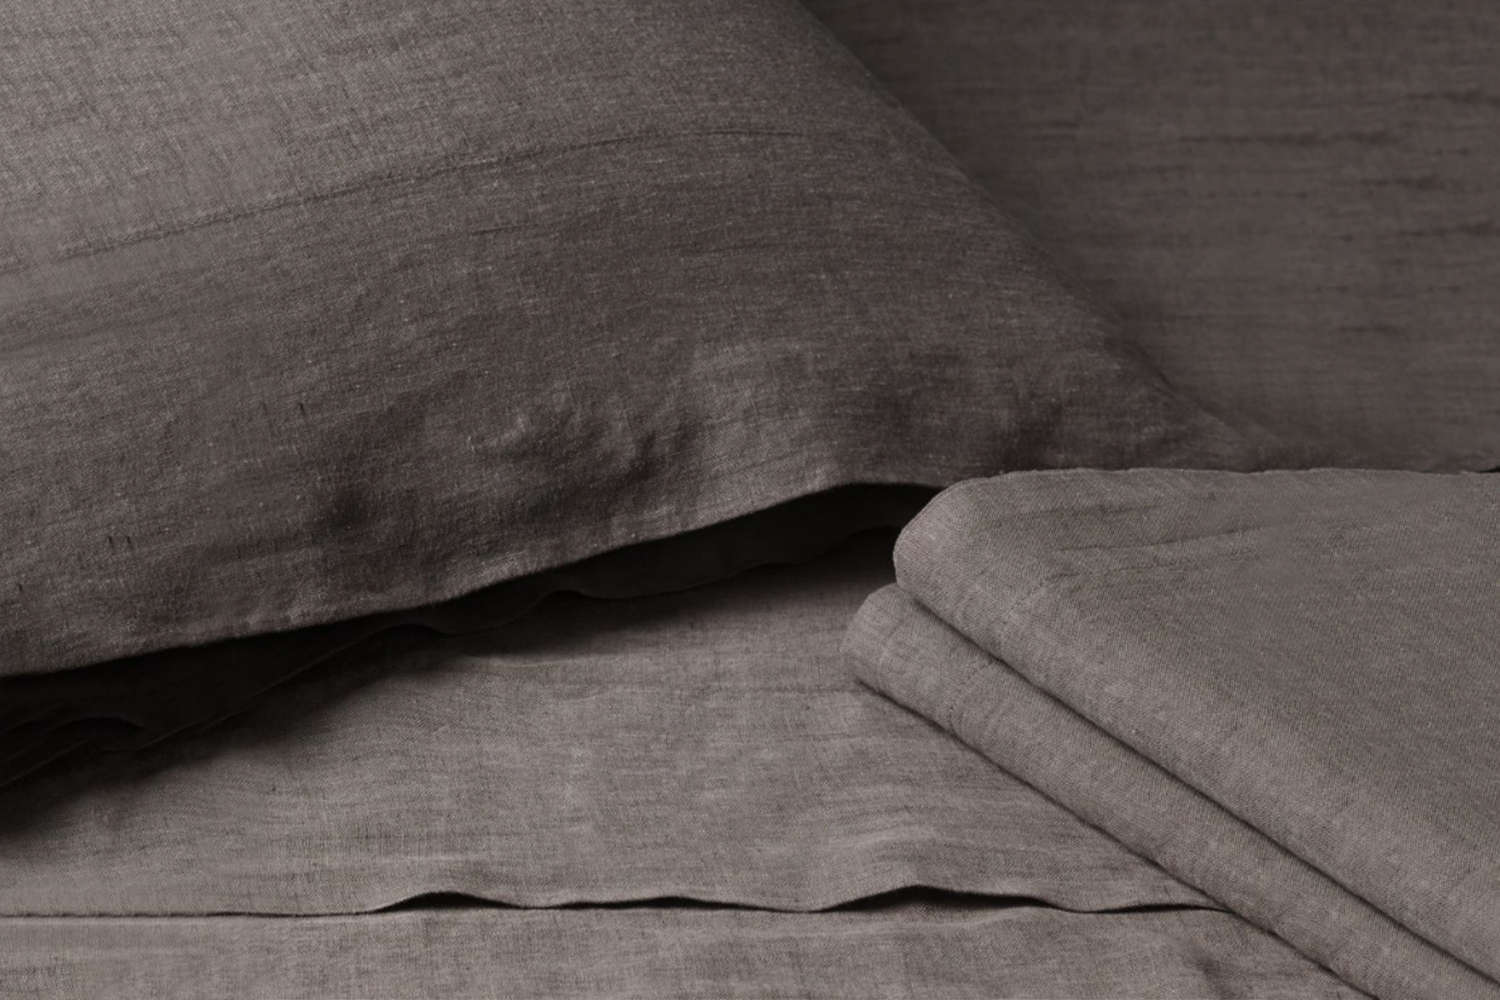 The bed sheets are Restoration Hardware&#8